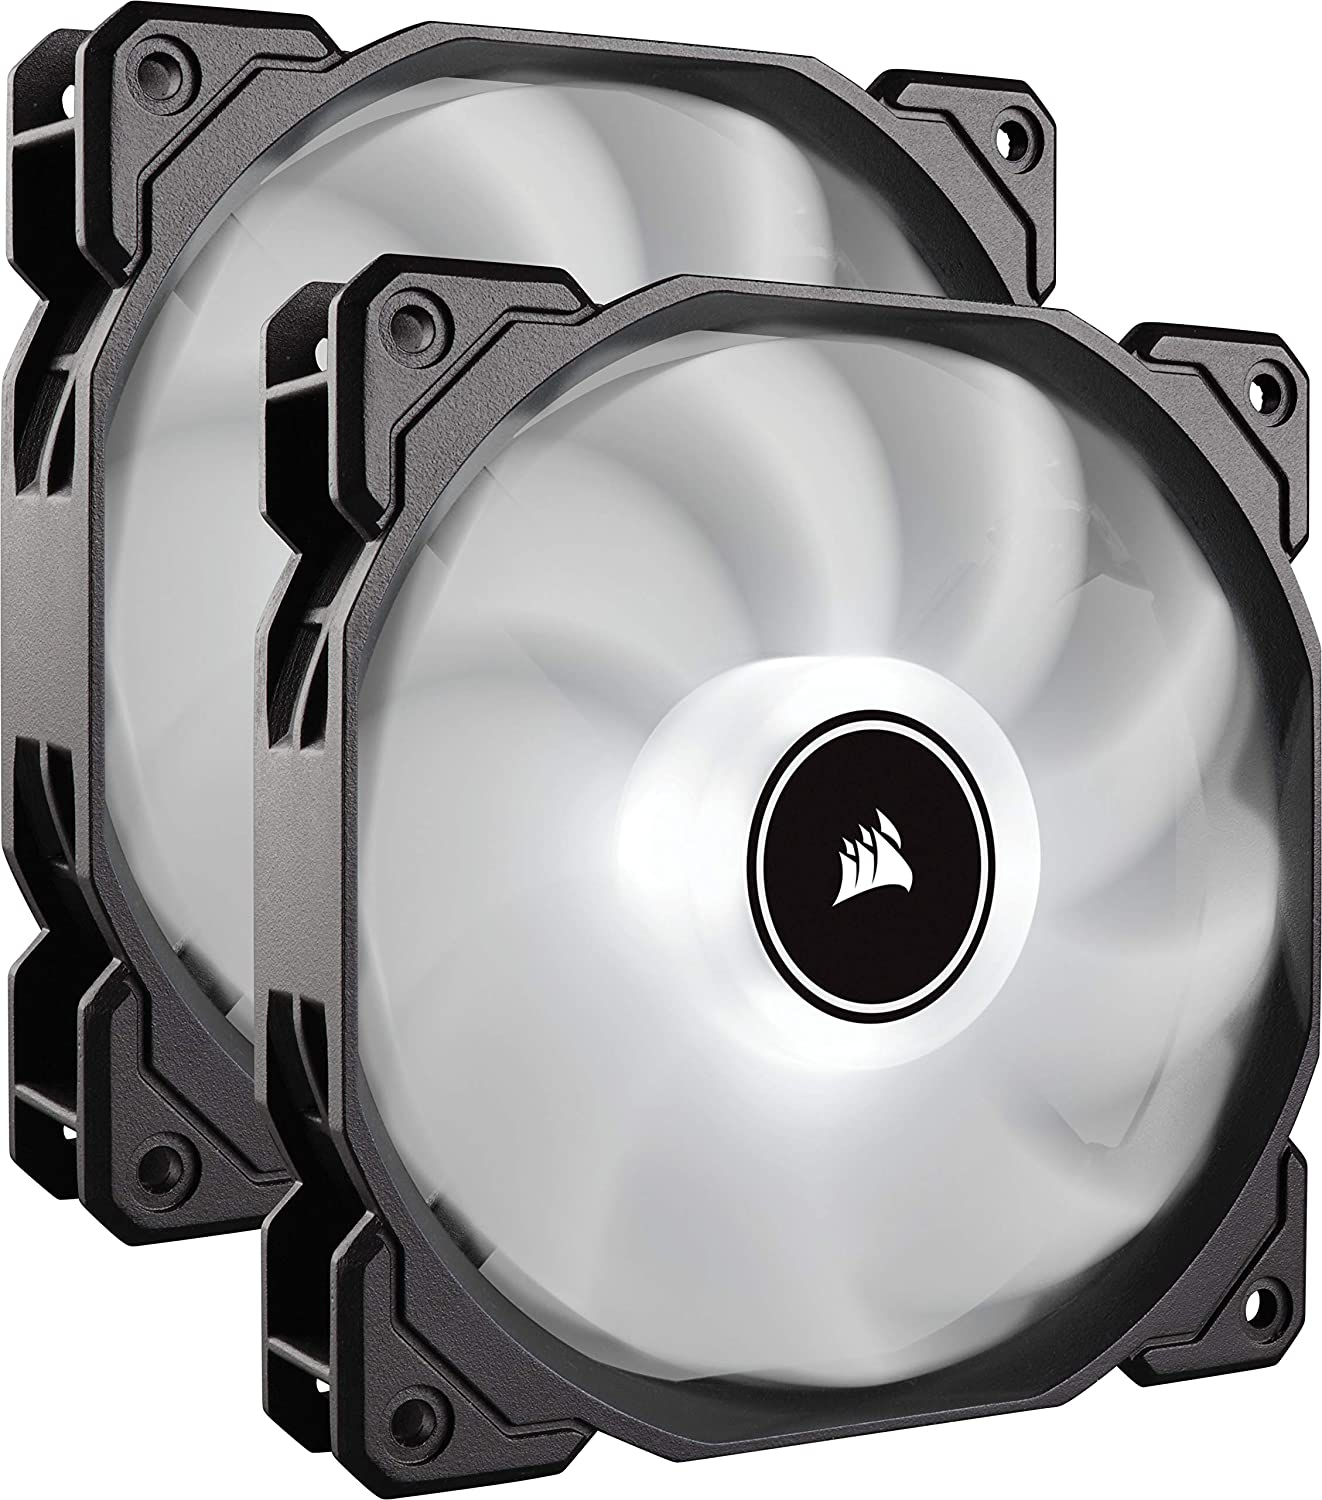 Venti. Caja CORSAIR AF140 LED Blanco Low Noise Dual Pack CO-9050088-WW CORSAIR AF140 LED, Carcasa del Ordenador, Enfriador, 1035 RPM, 1265 RPM, 26 DB, 62 CFM